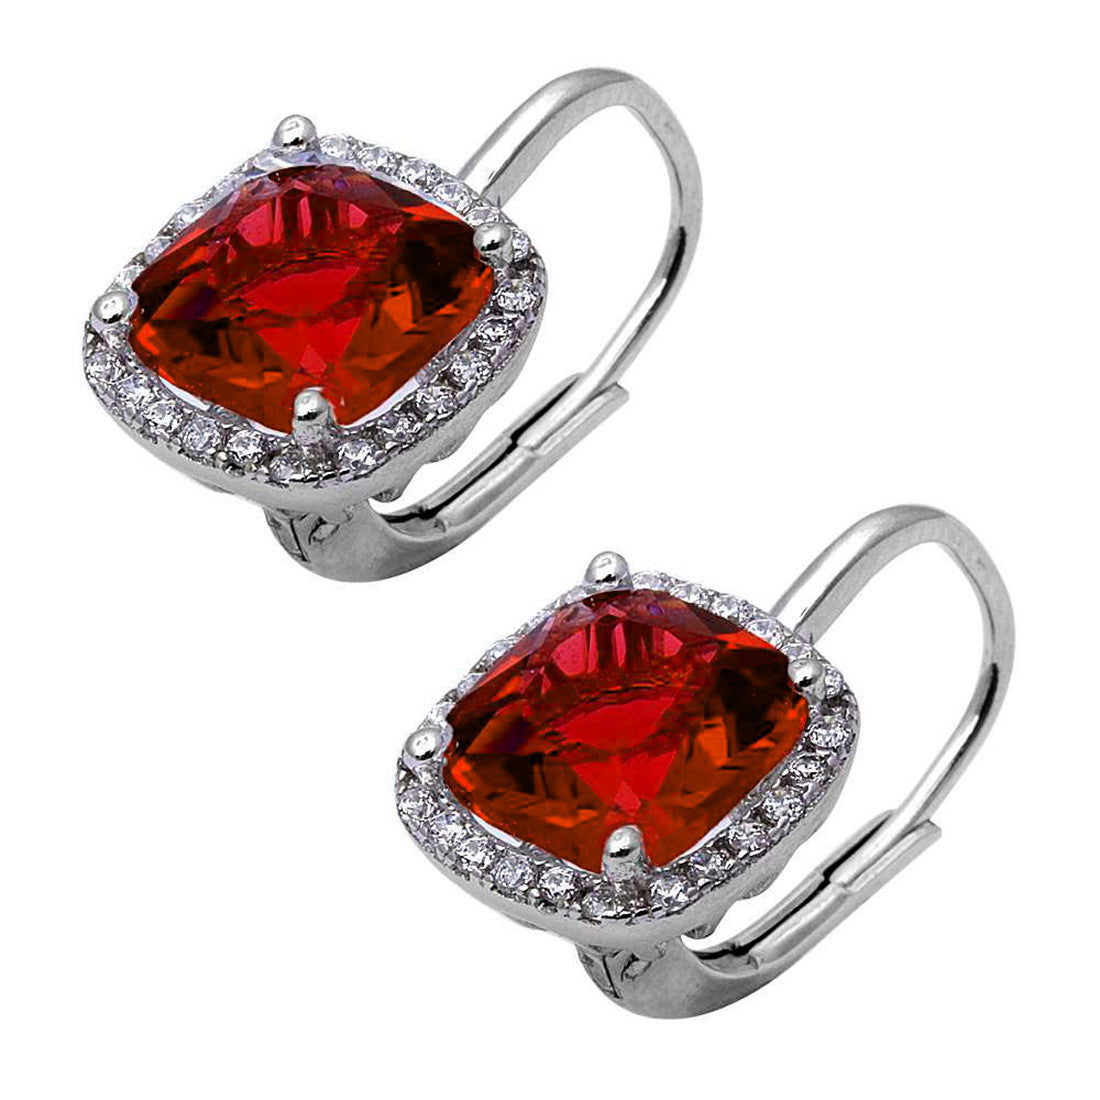 Cushion Halo Leverback Earrings Round Cubic Zirconia 925 Sterling Silver